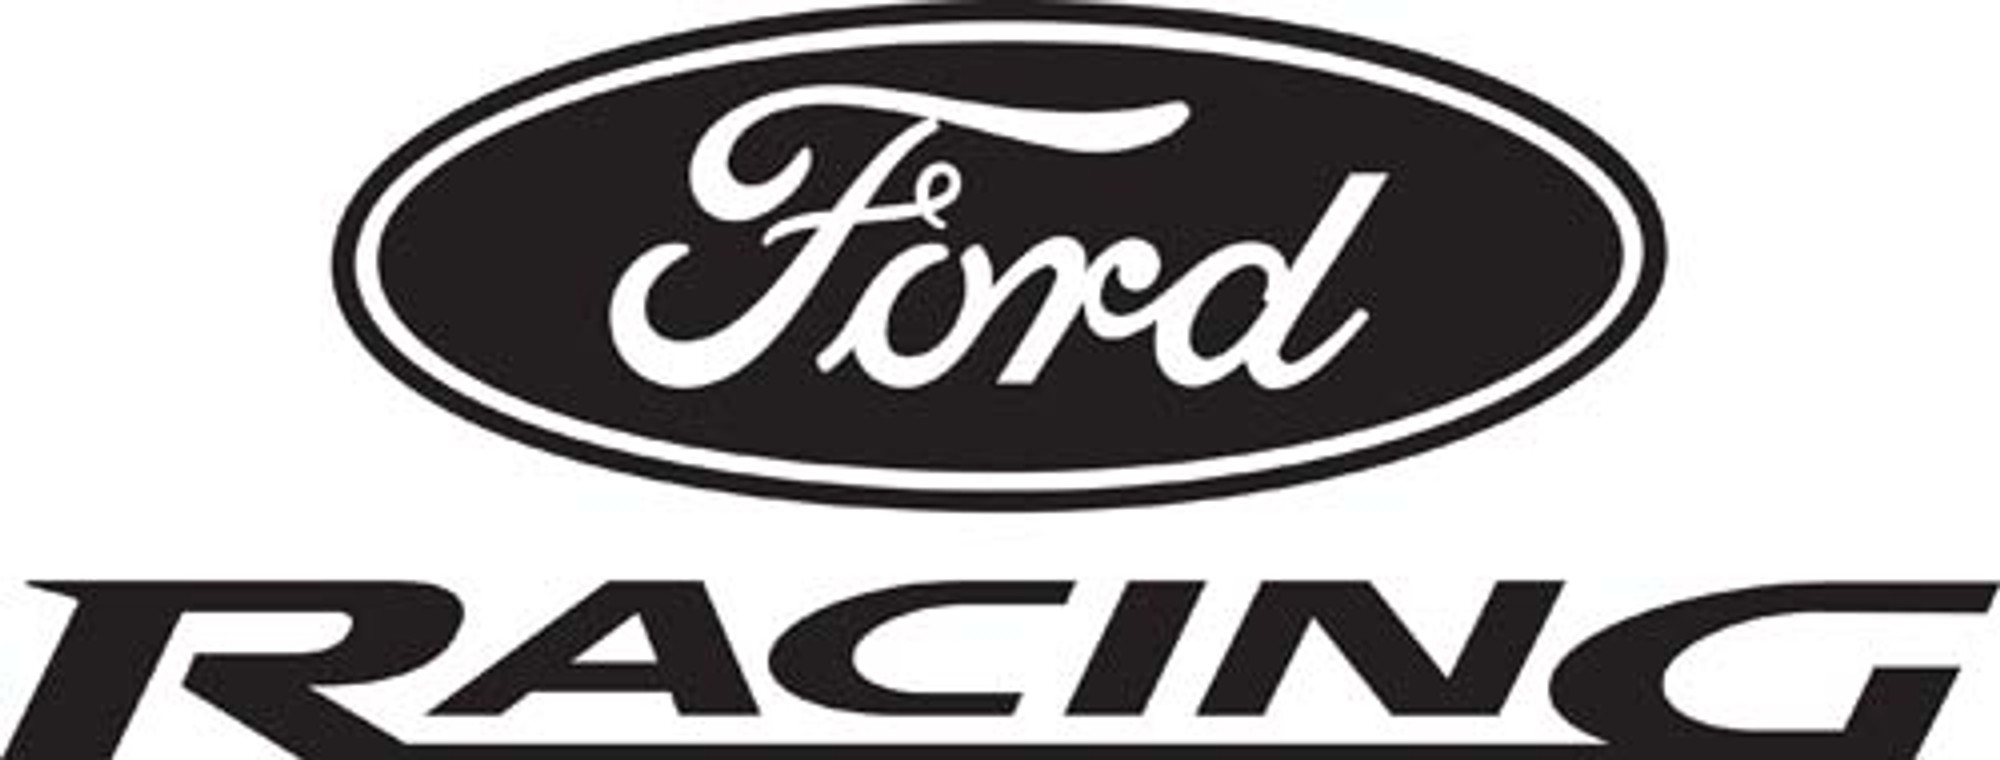 Ford Racing Decal